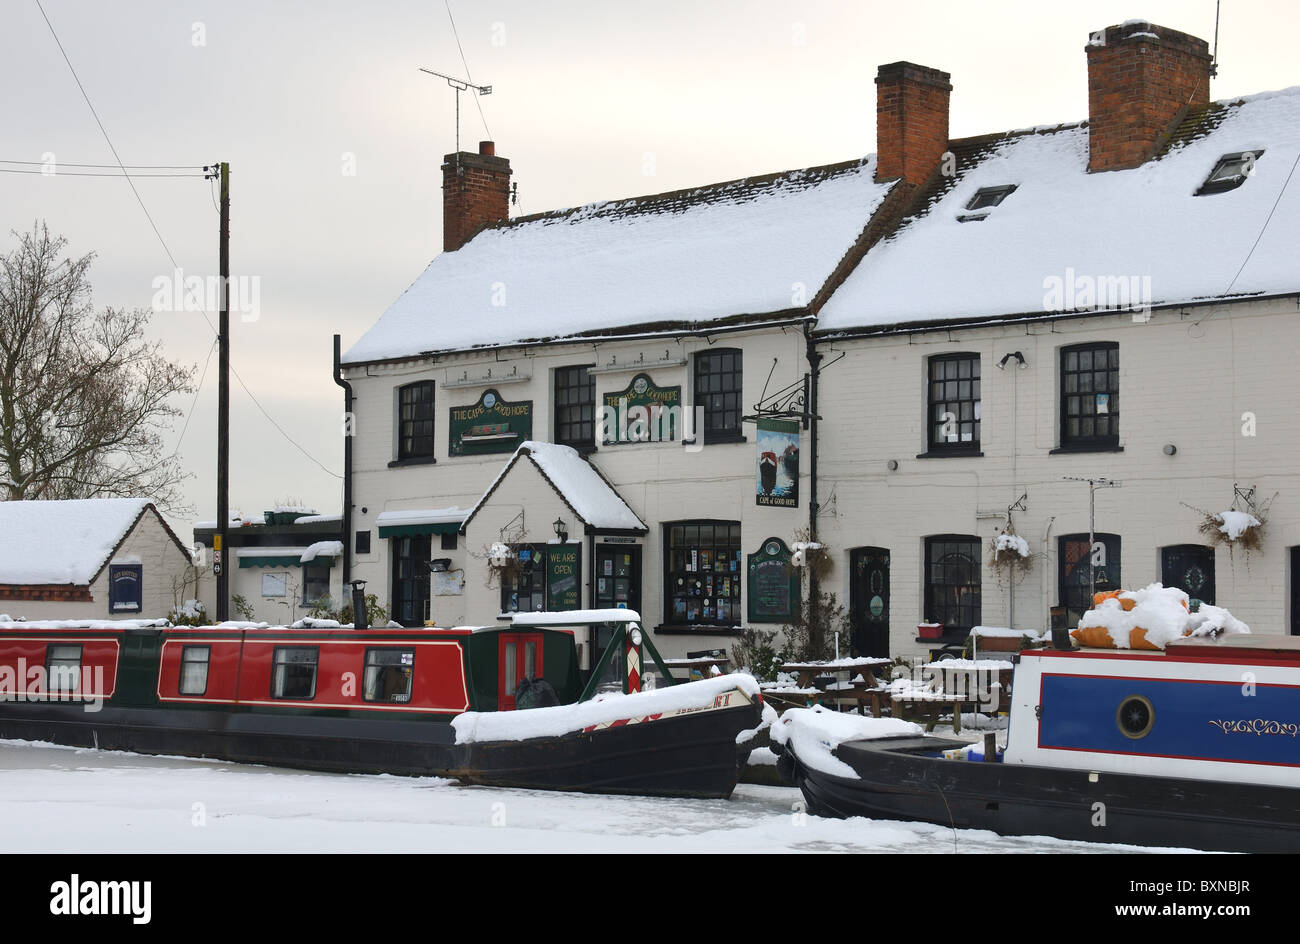 The Cape of Good Hope pub and Grand Union Canal in winter with snow, Warwick, UK - Stock Image